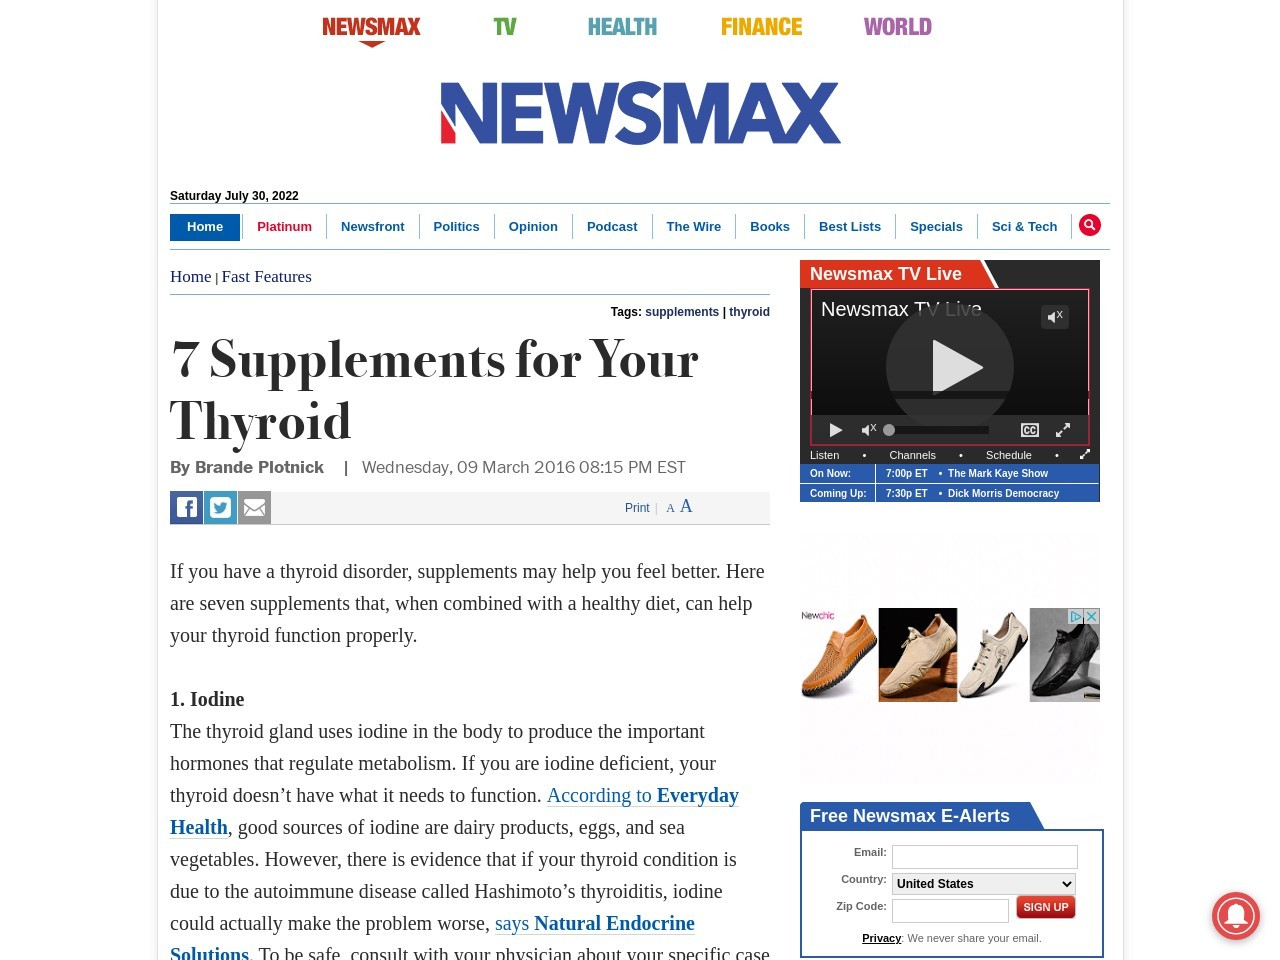 7 Supplements for Your Thyroid